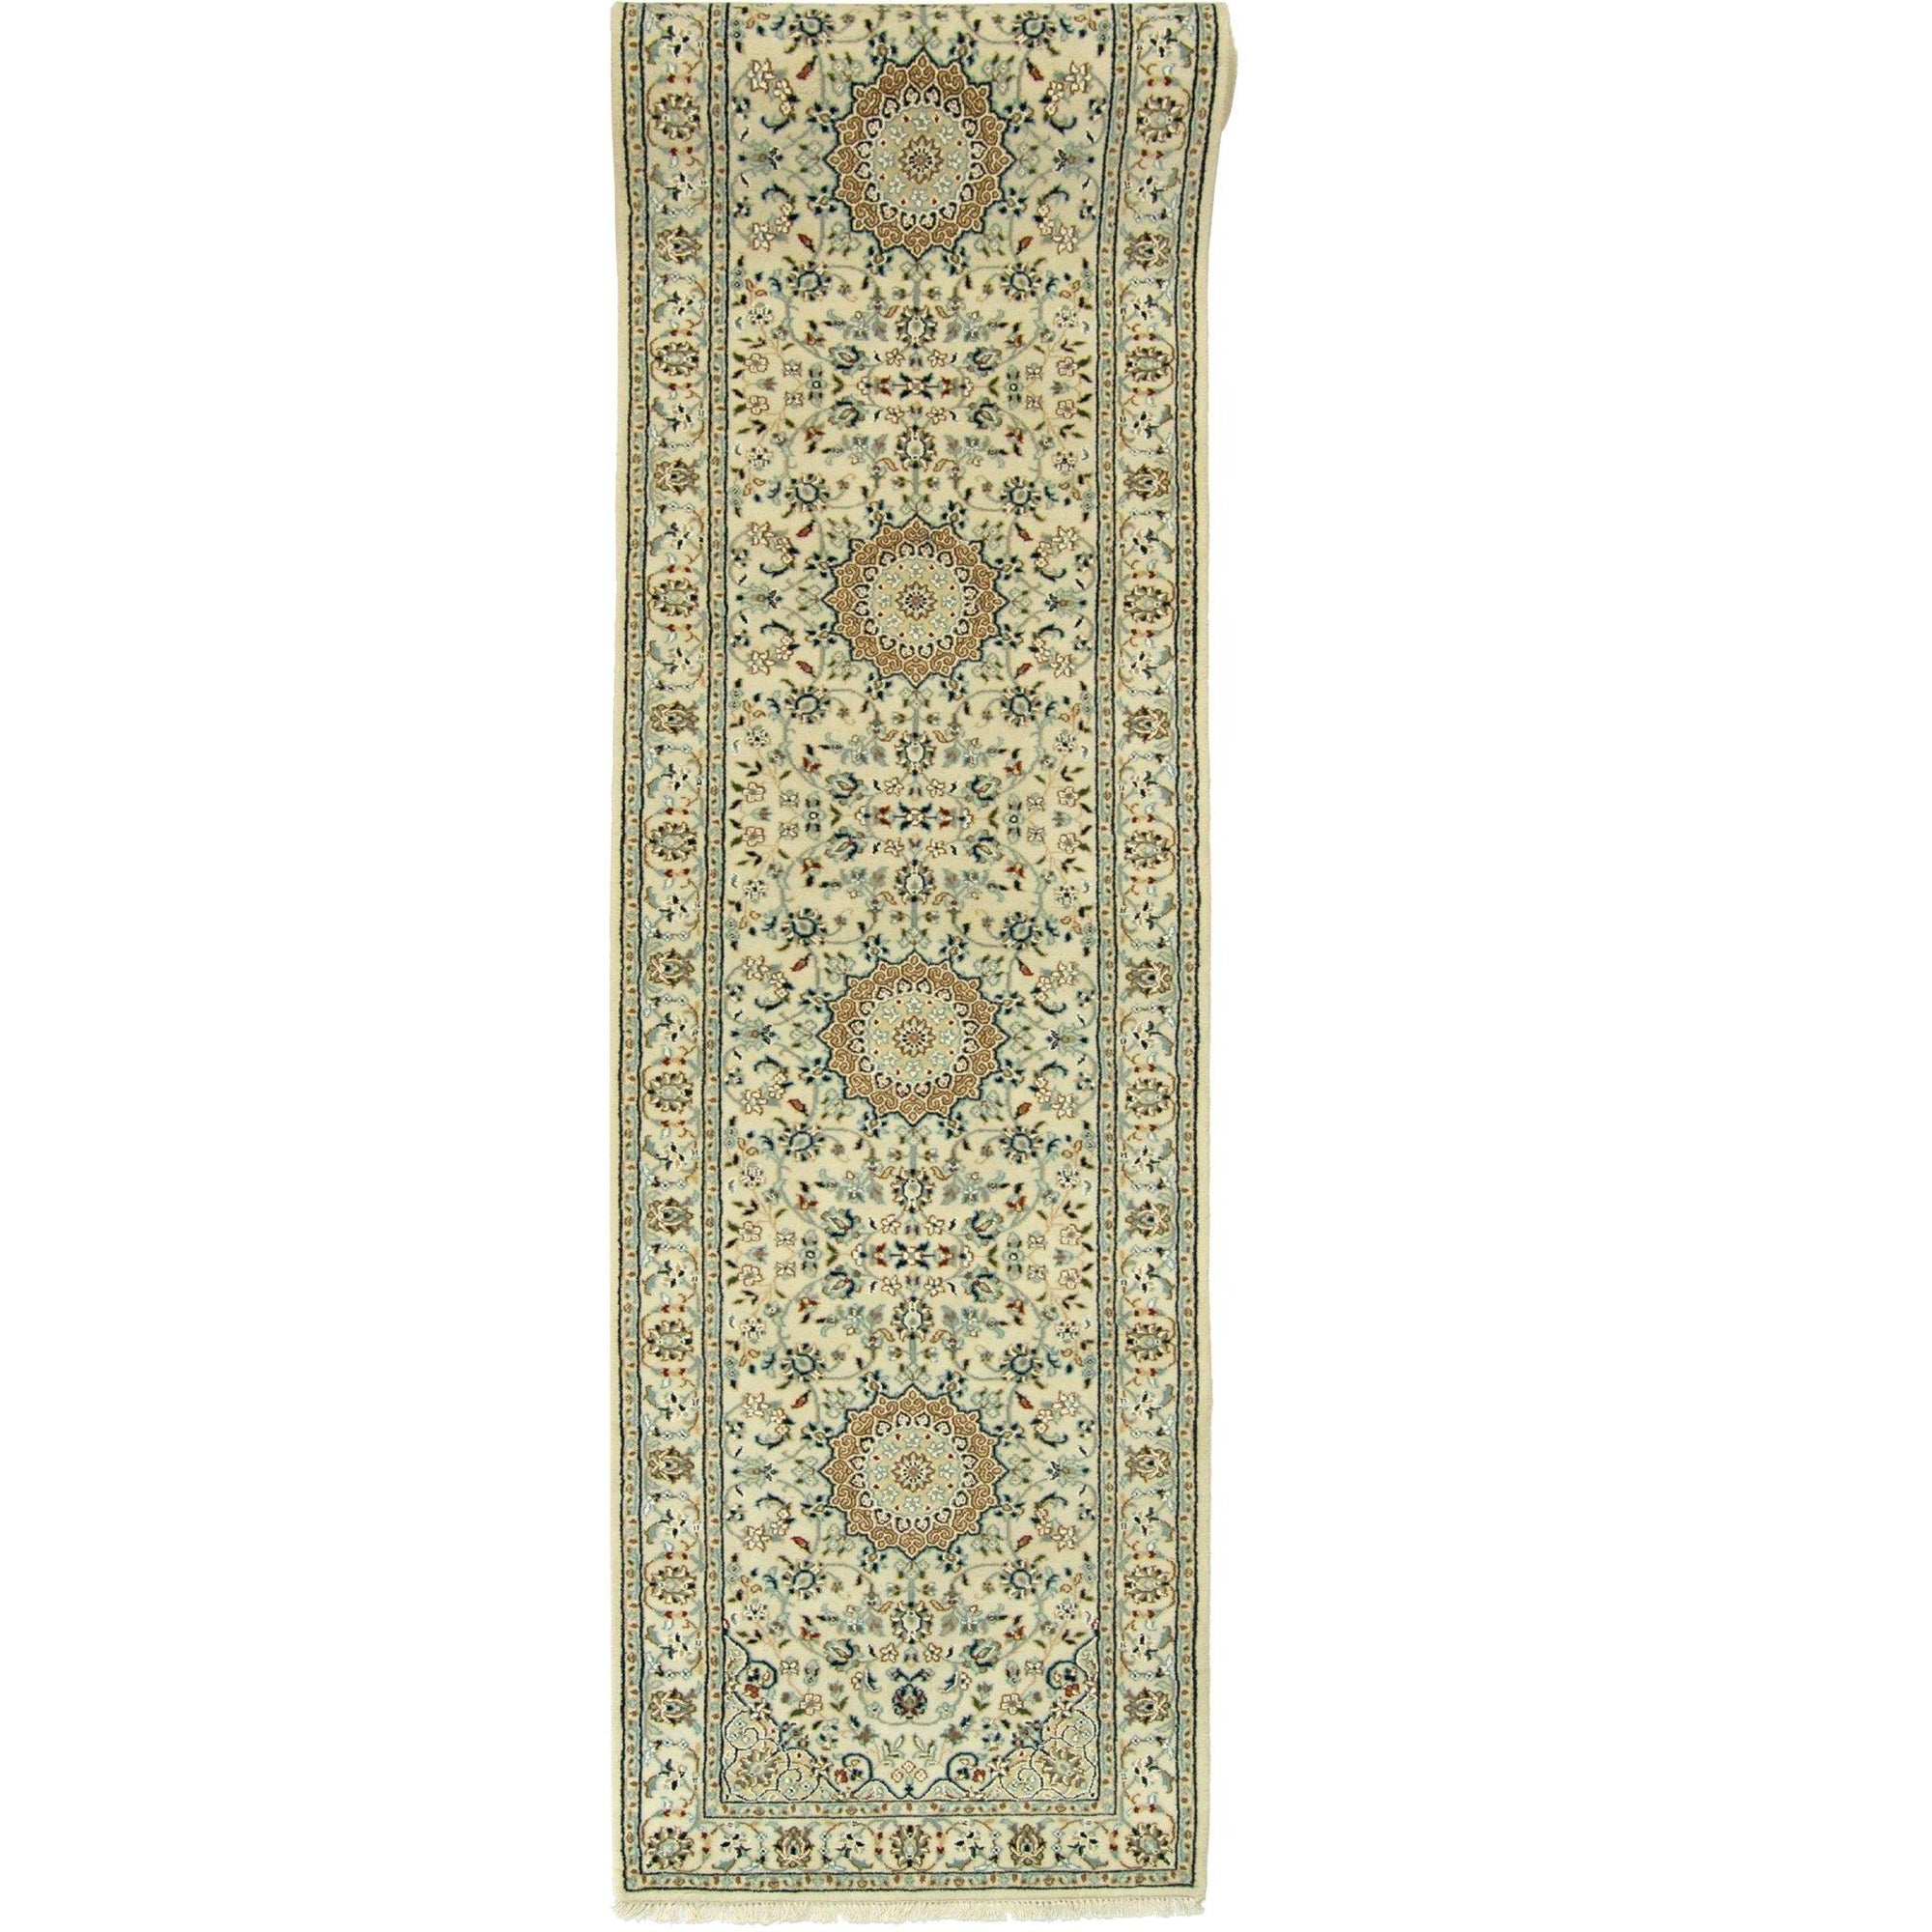 Fine Nain Hand-knotted Wool and Silk Nain Runner 81cm x 353cm Persian-Rug | House-of-Haghi | NewMarket | Auckland | NZ | Handmade Persian Rugs | Hand Knotted Persian Rugs